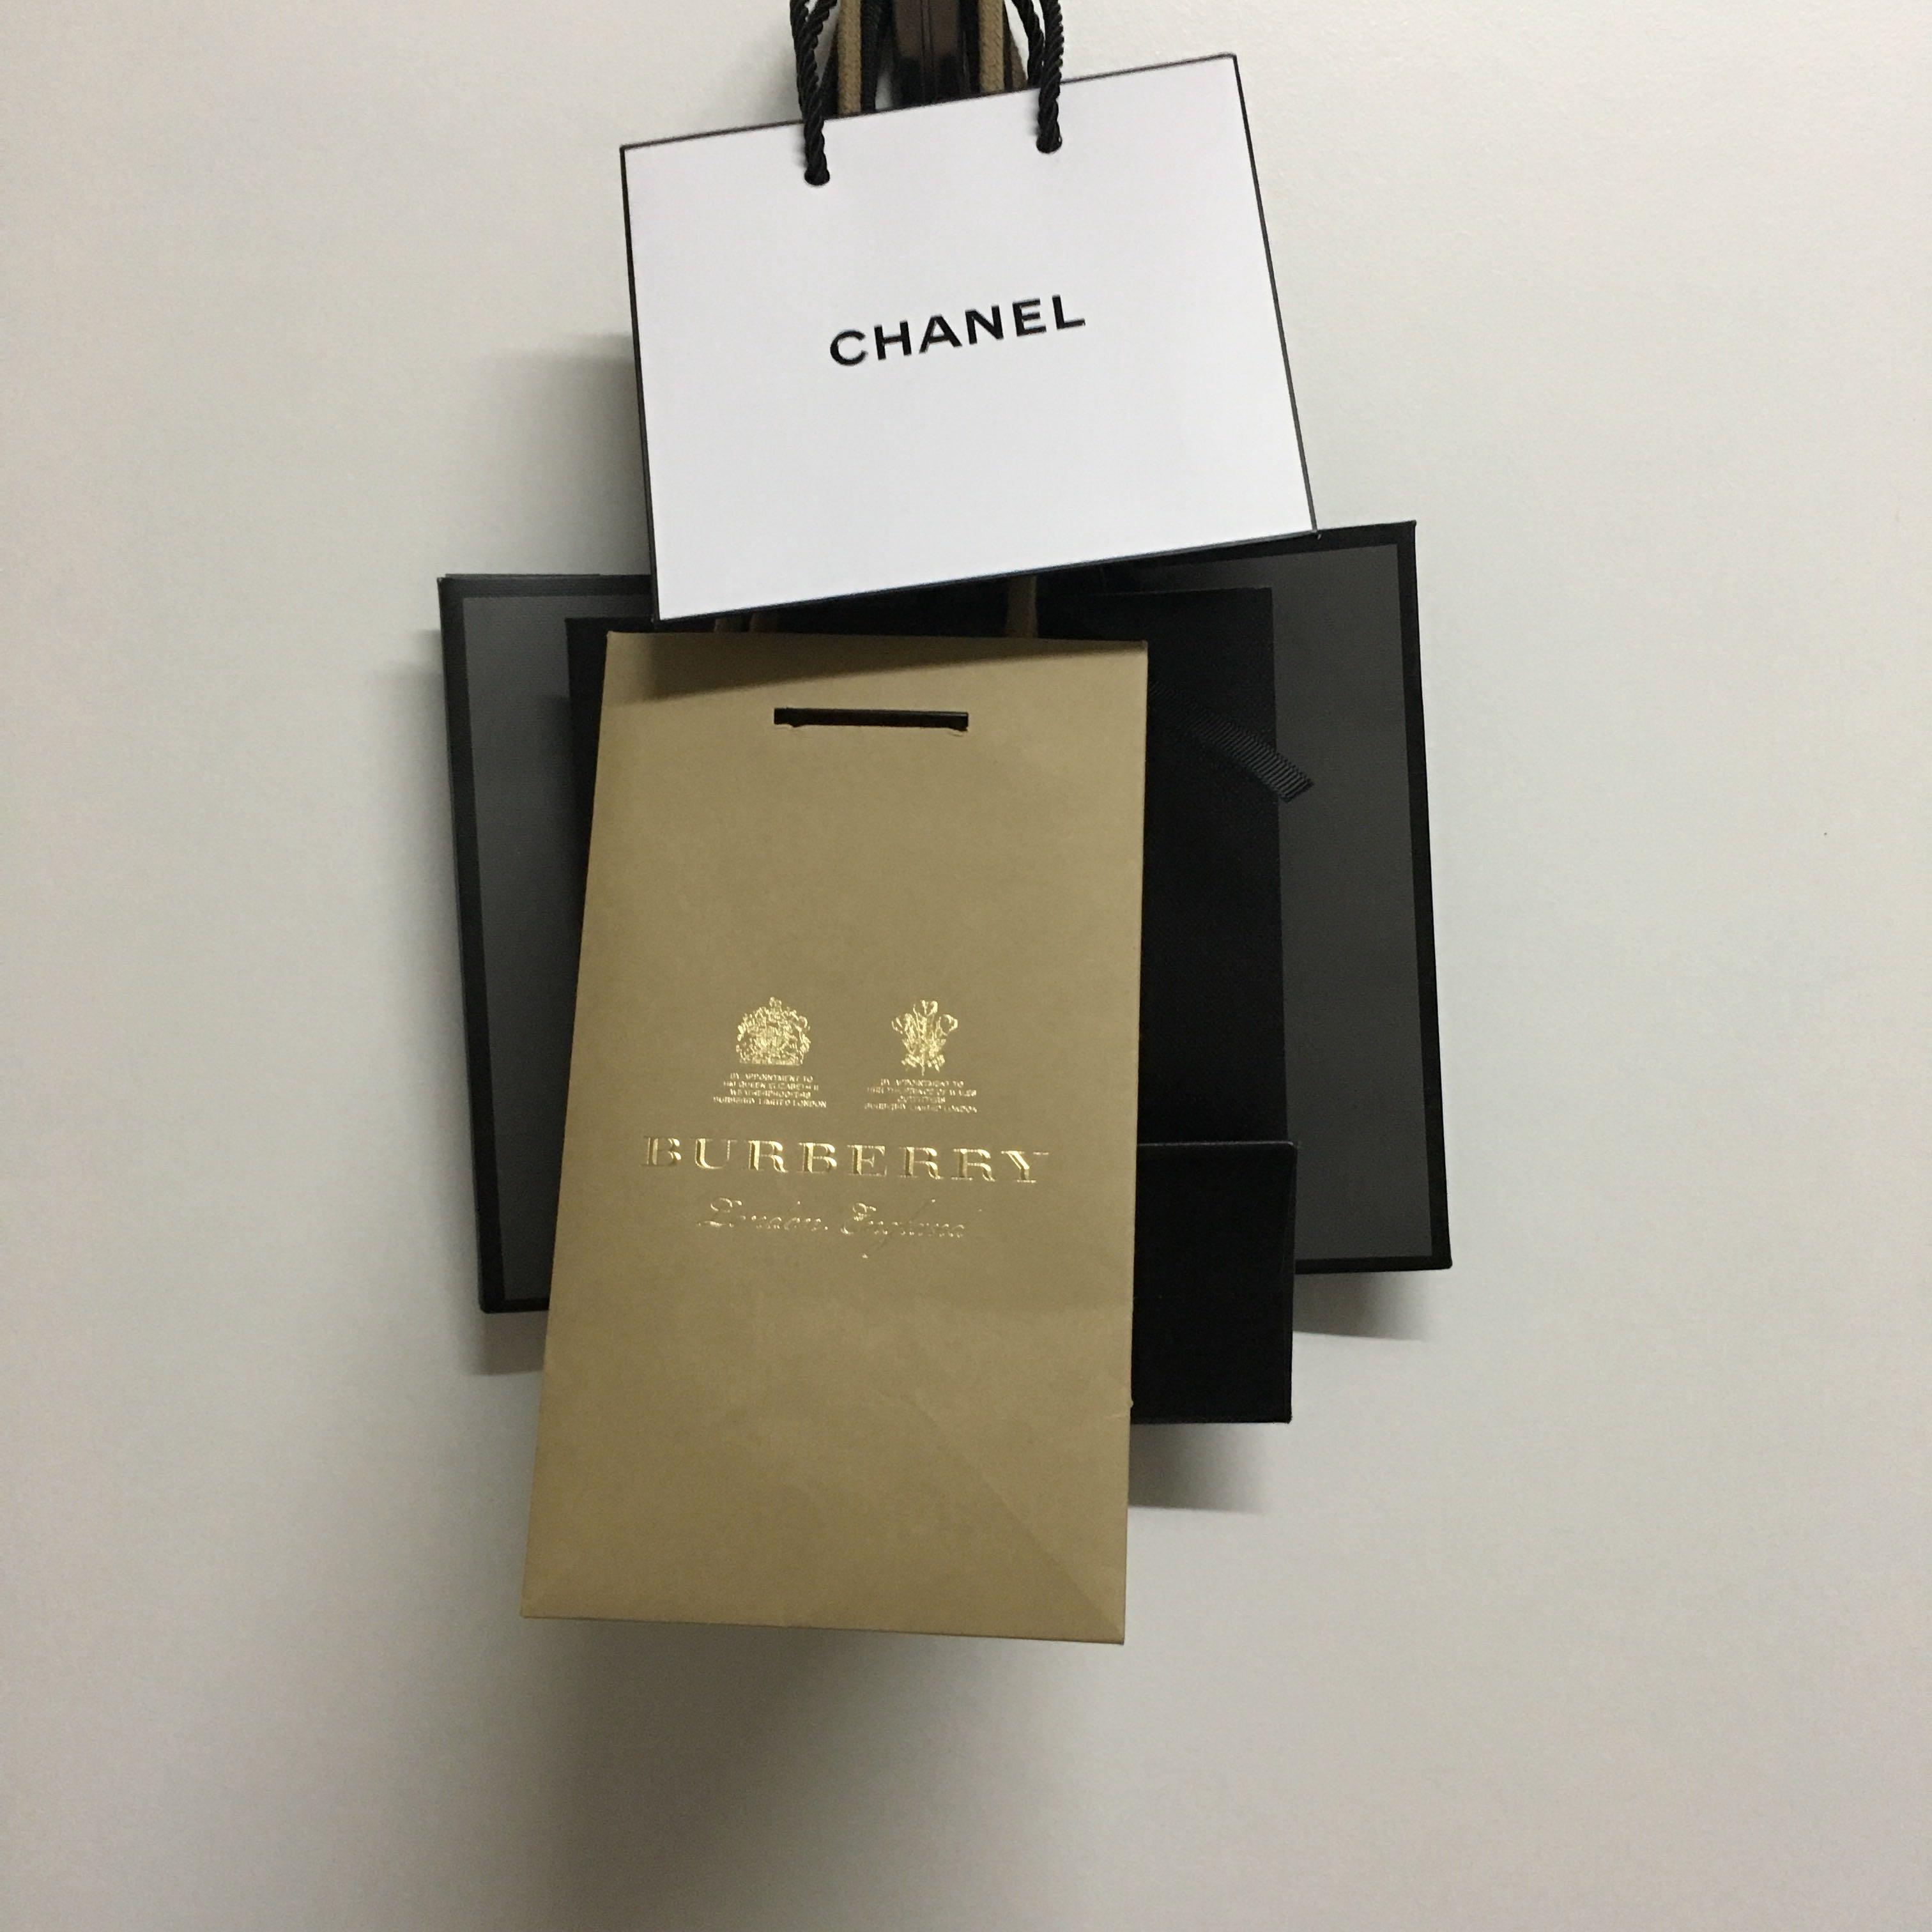 Very cute and small designer paperbag chanel burberry tom ford  pedro